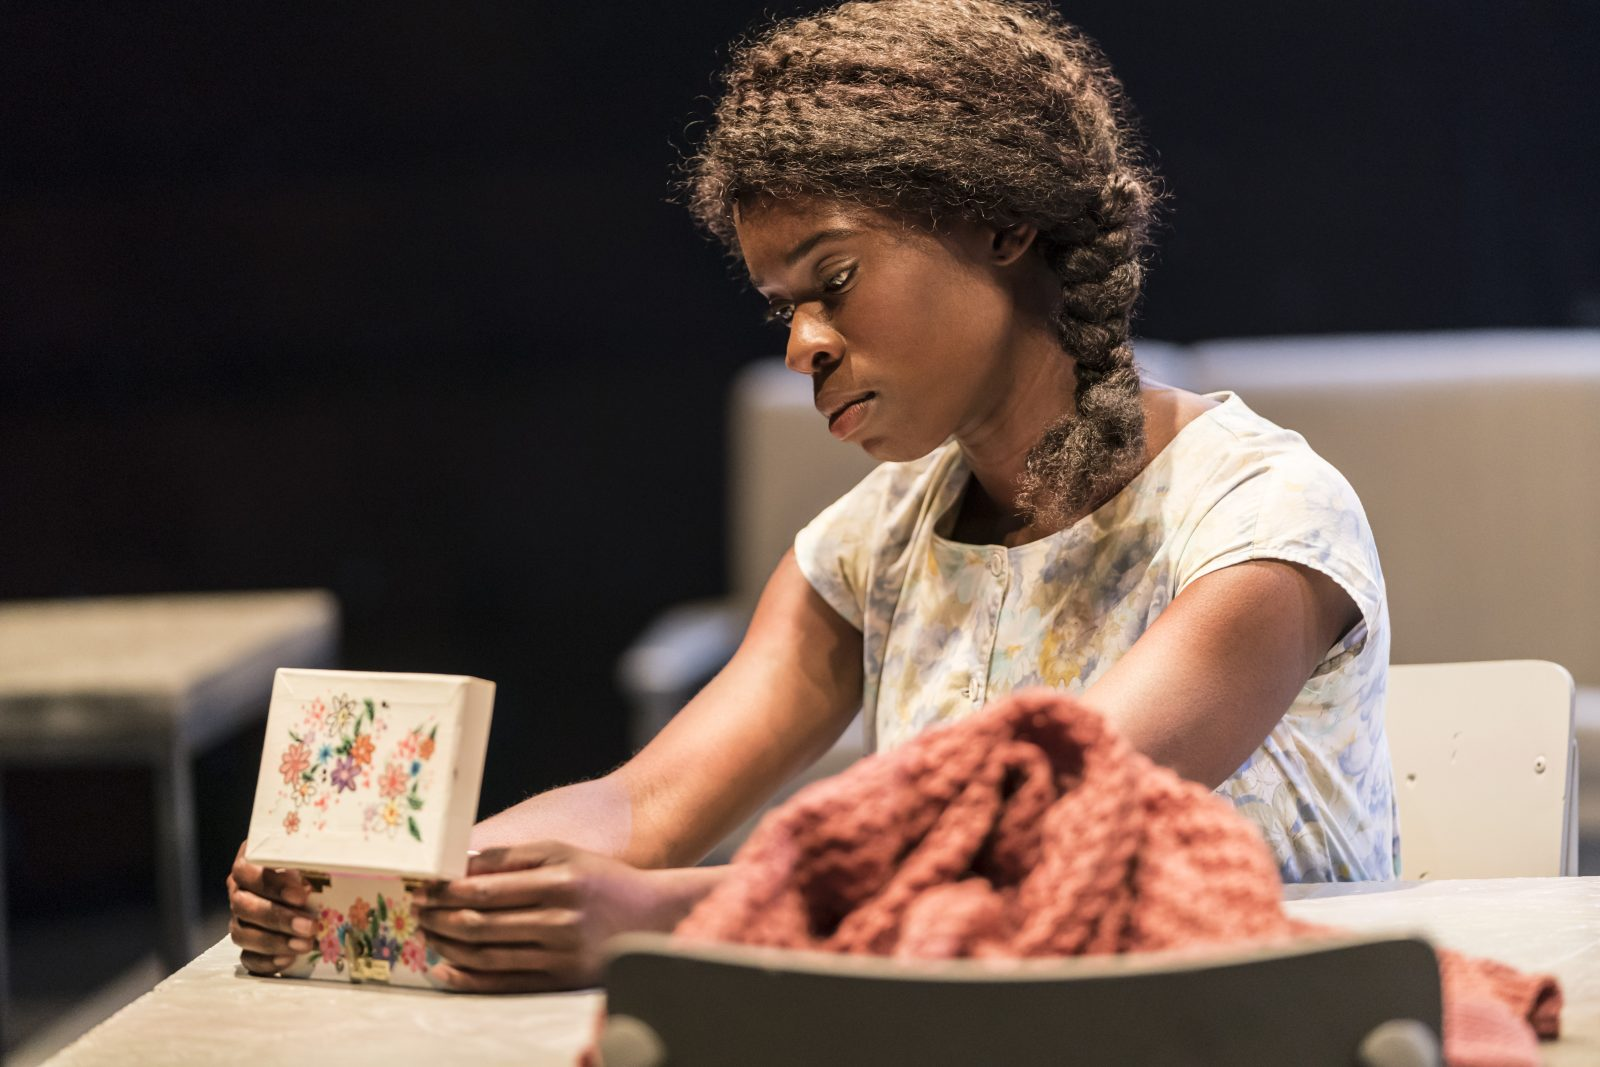 faith omole as joy, sat at table looking down into a musical box